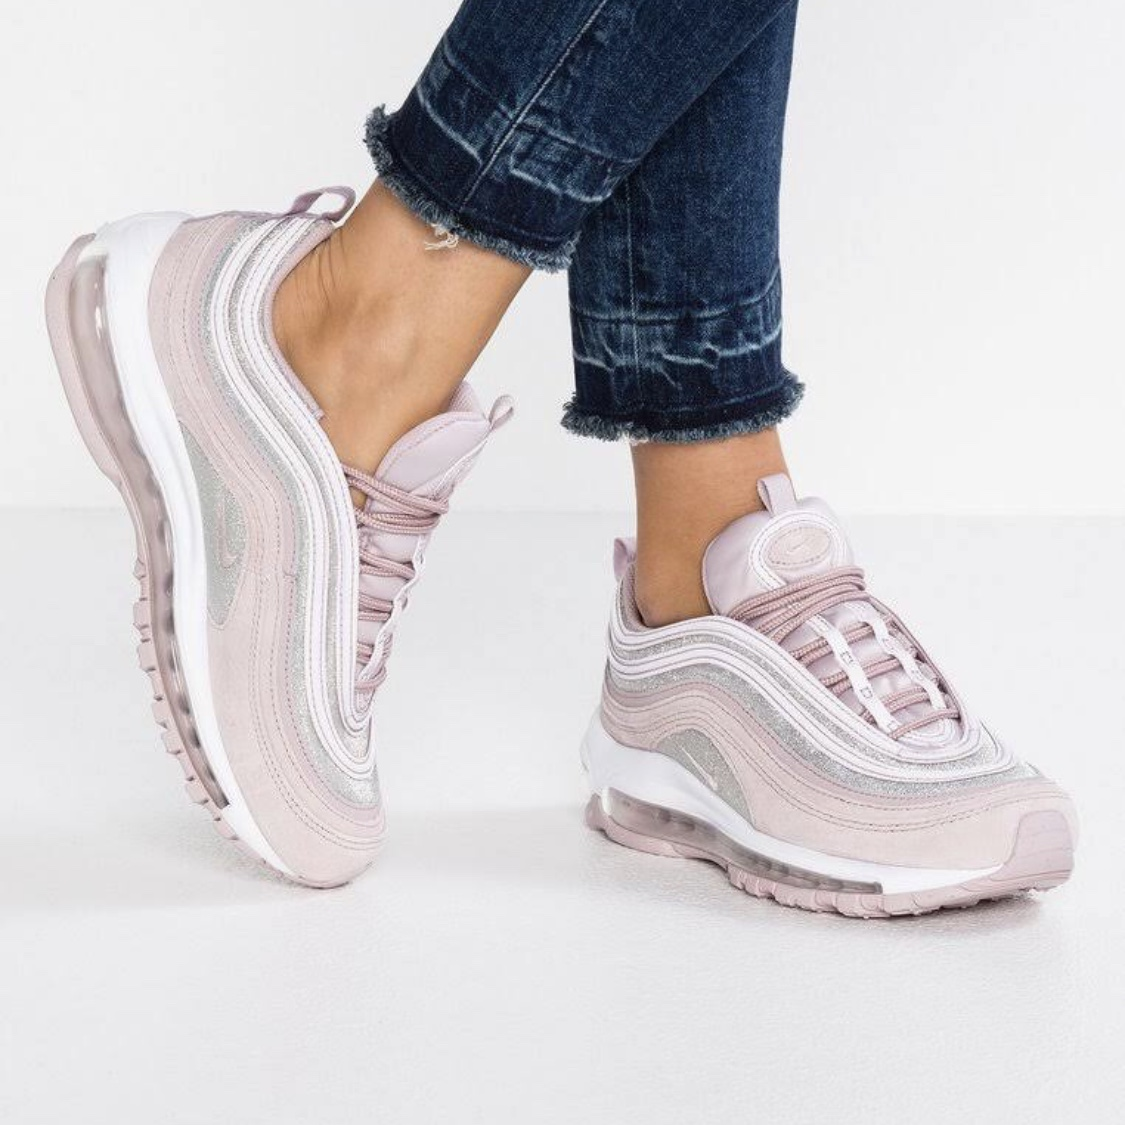 Baby pink suede glitter Nike air max 97 brand new in Depop